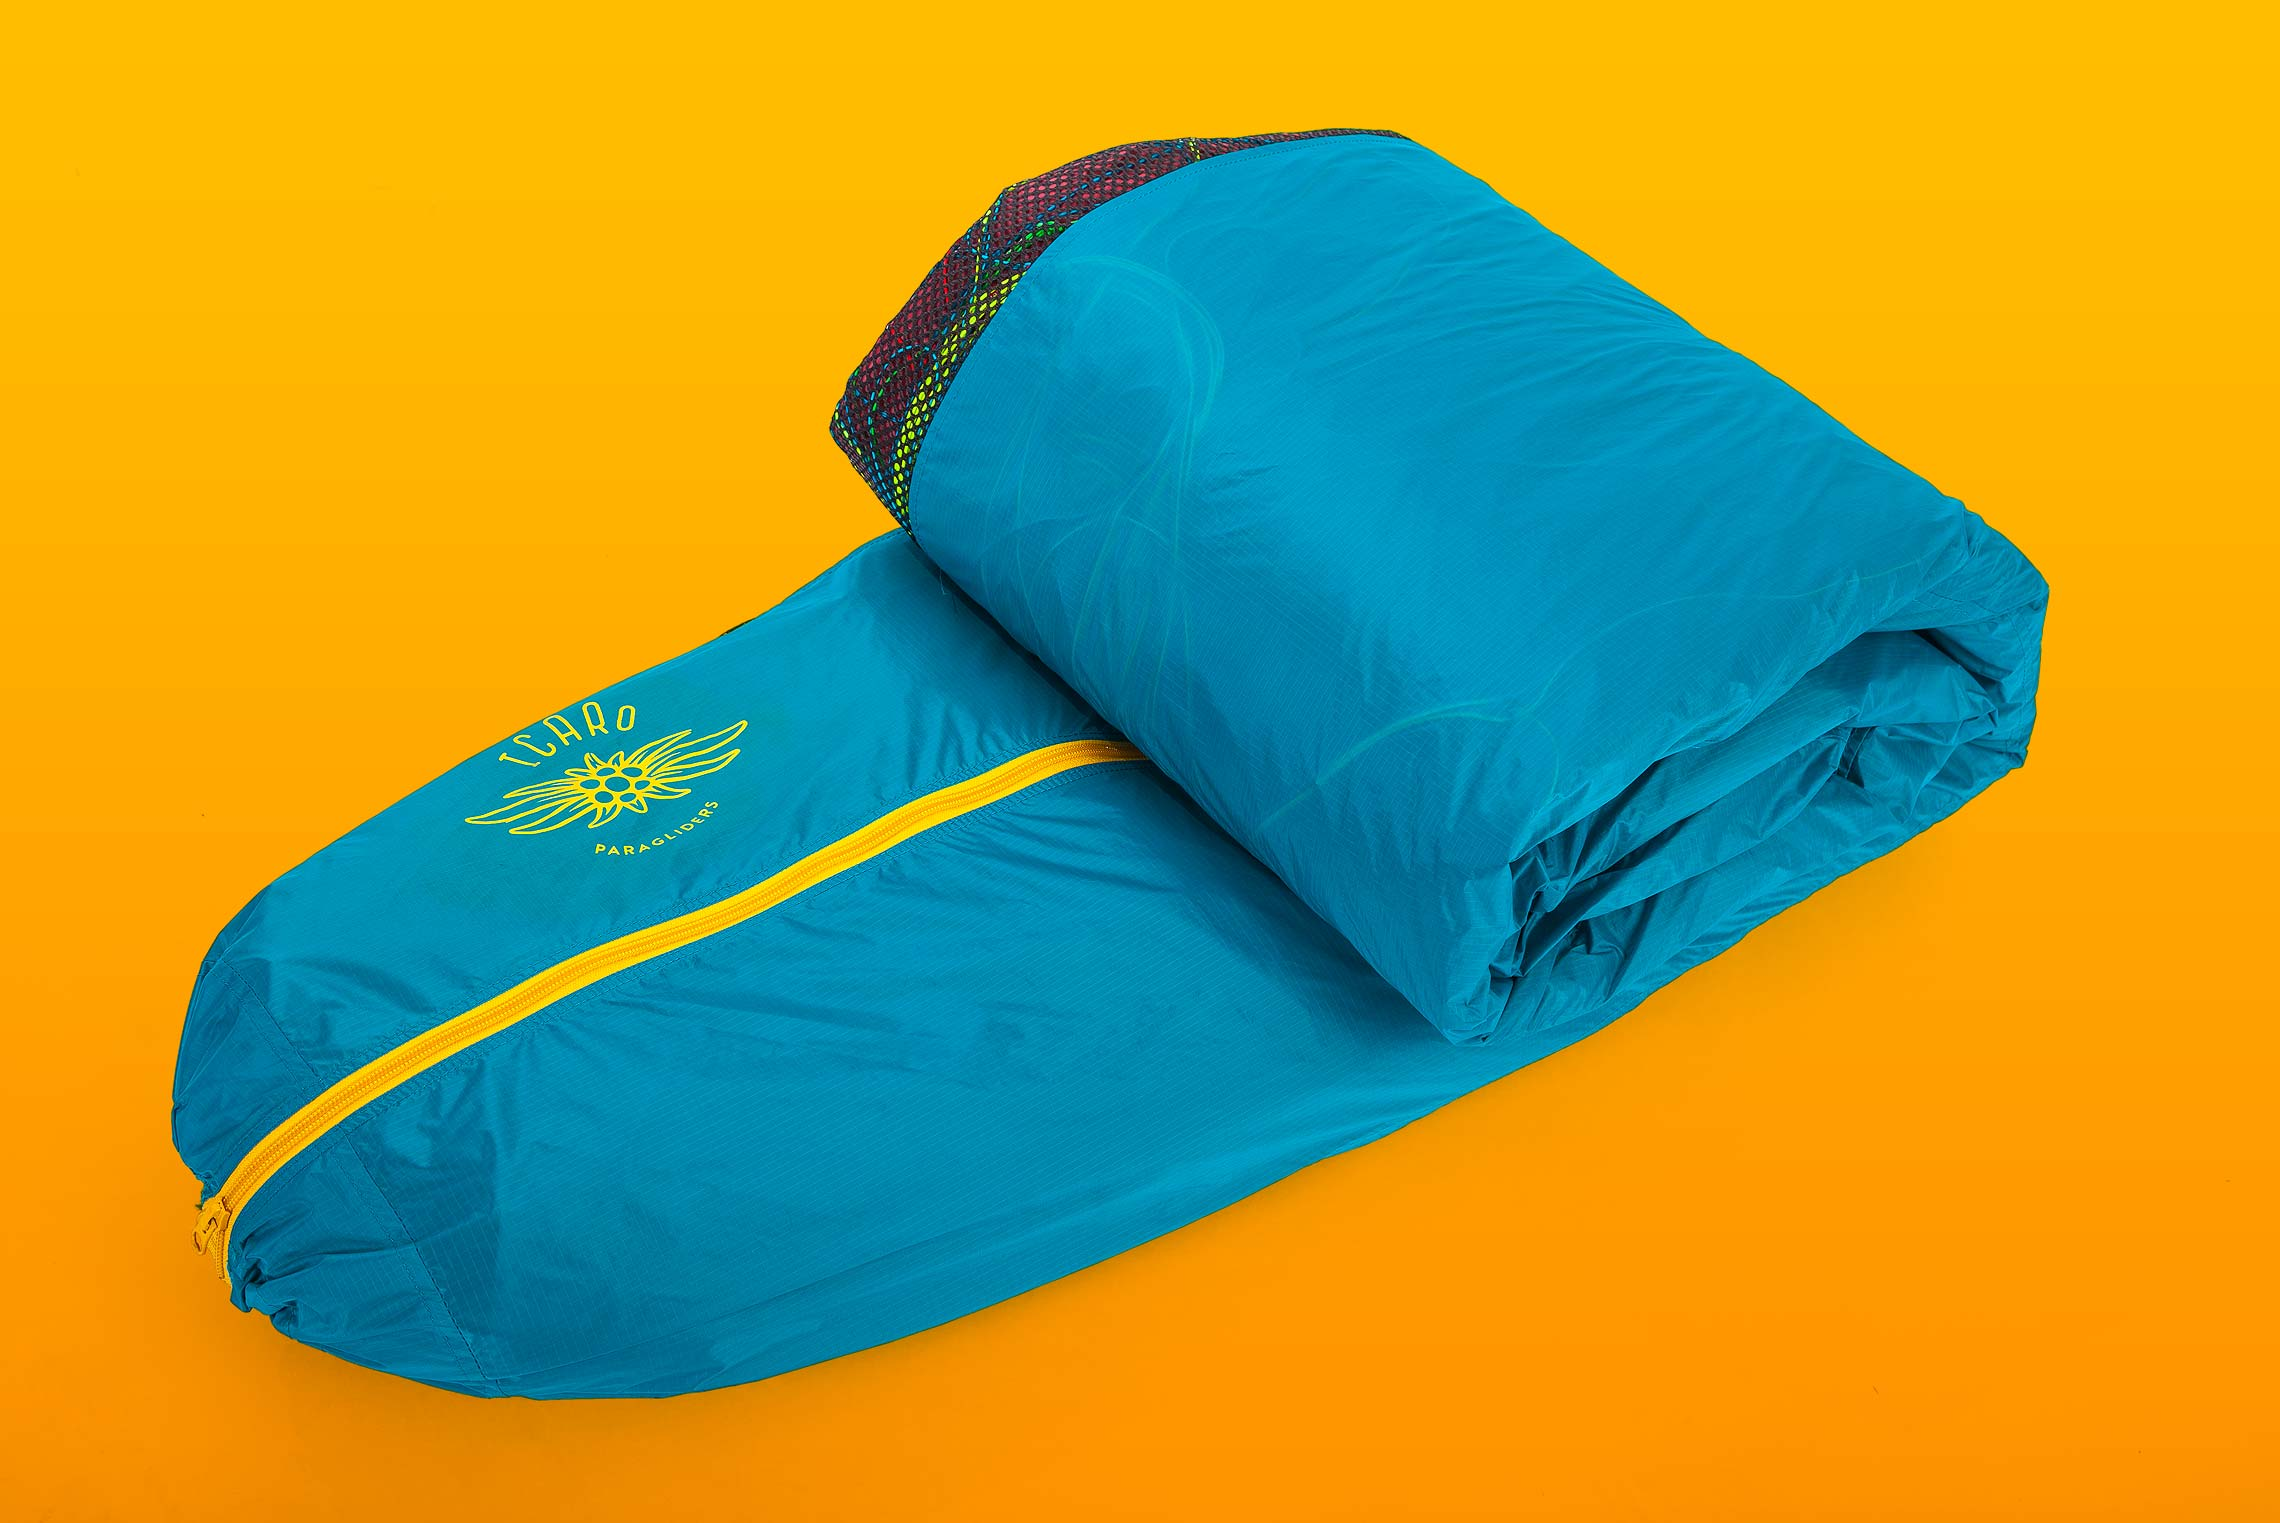 icaro-paragliders-cell-bag_2015_03